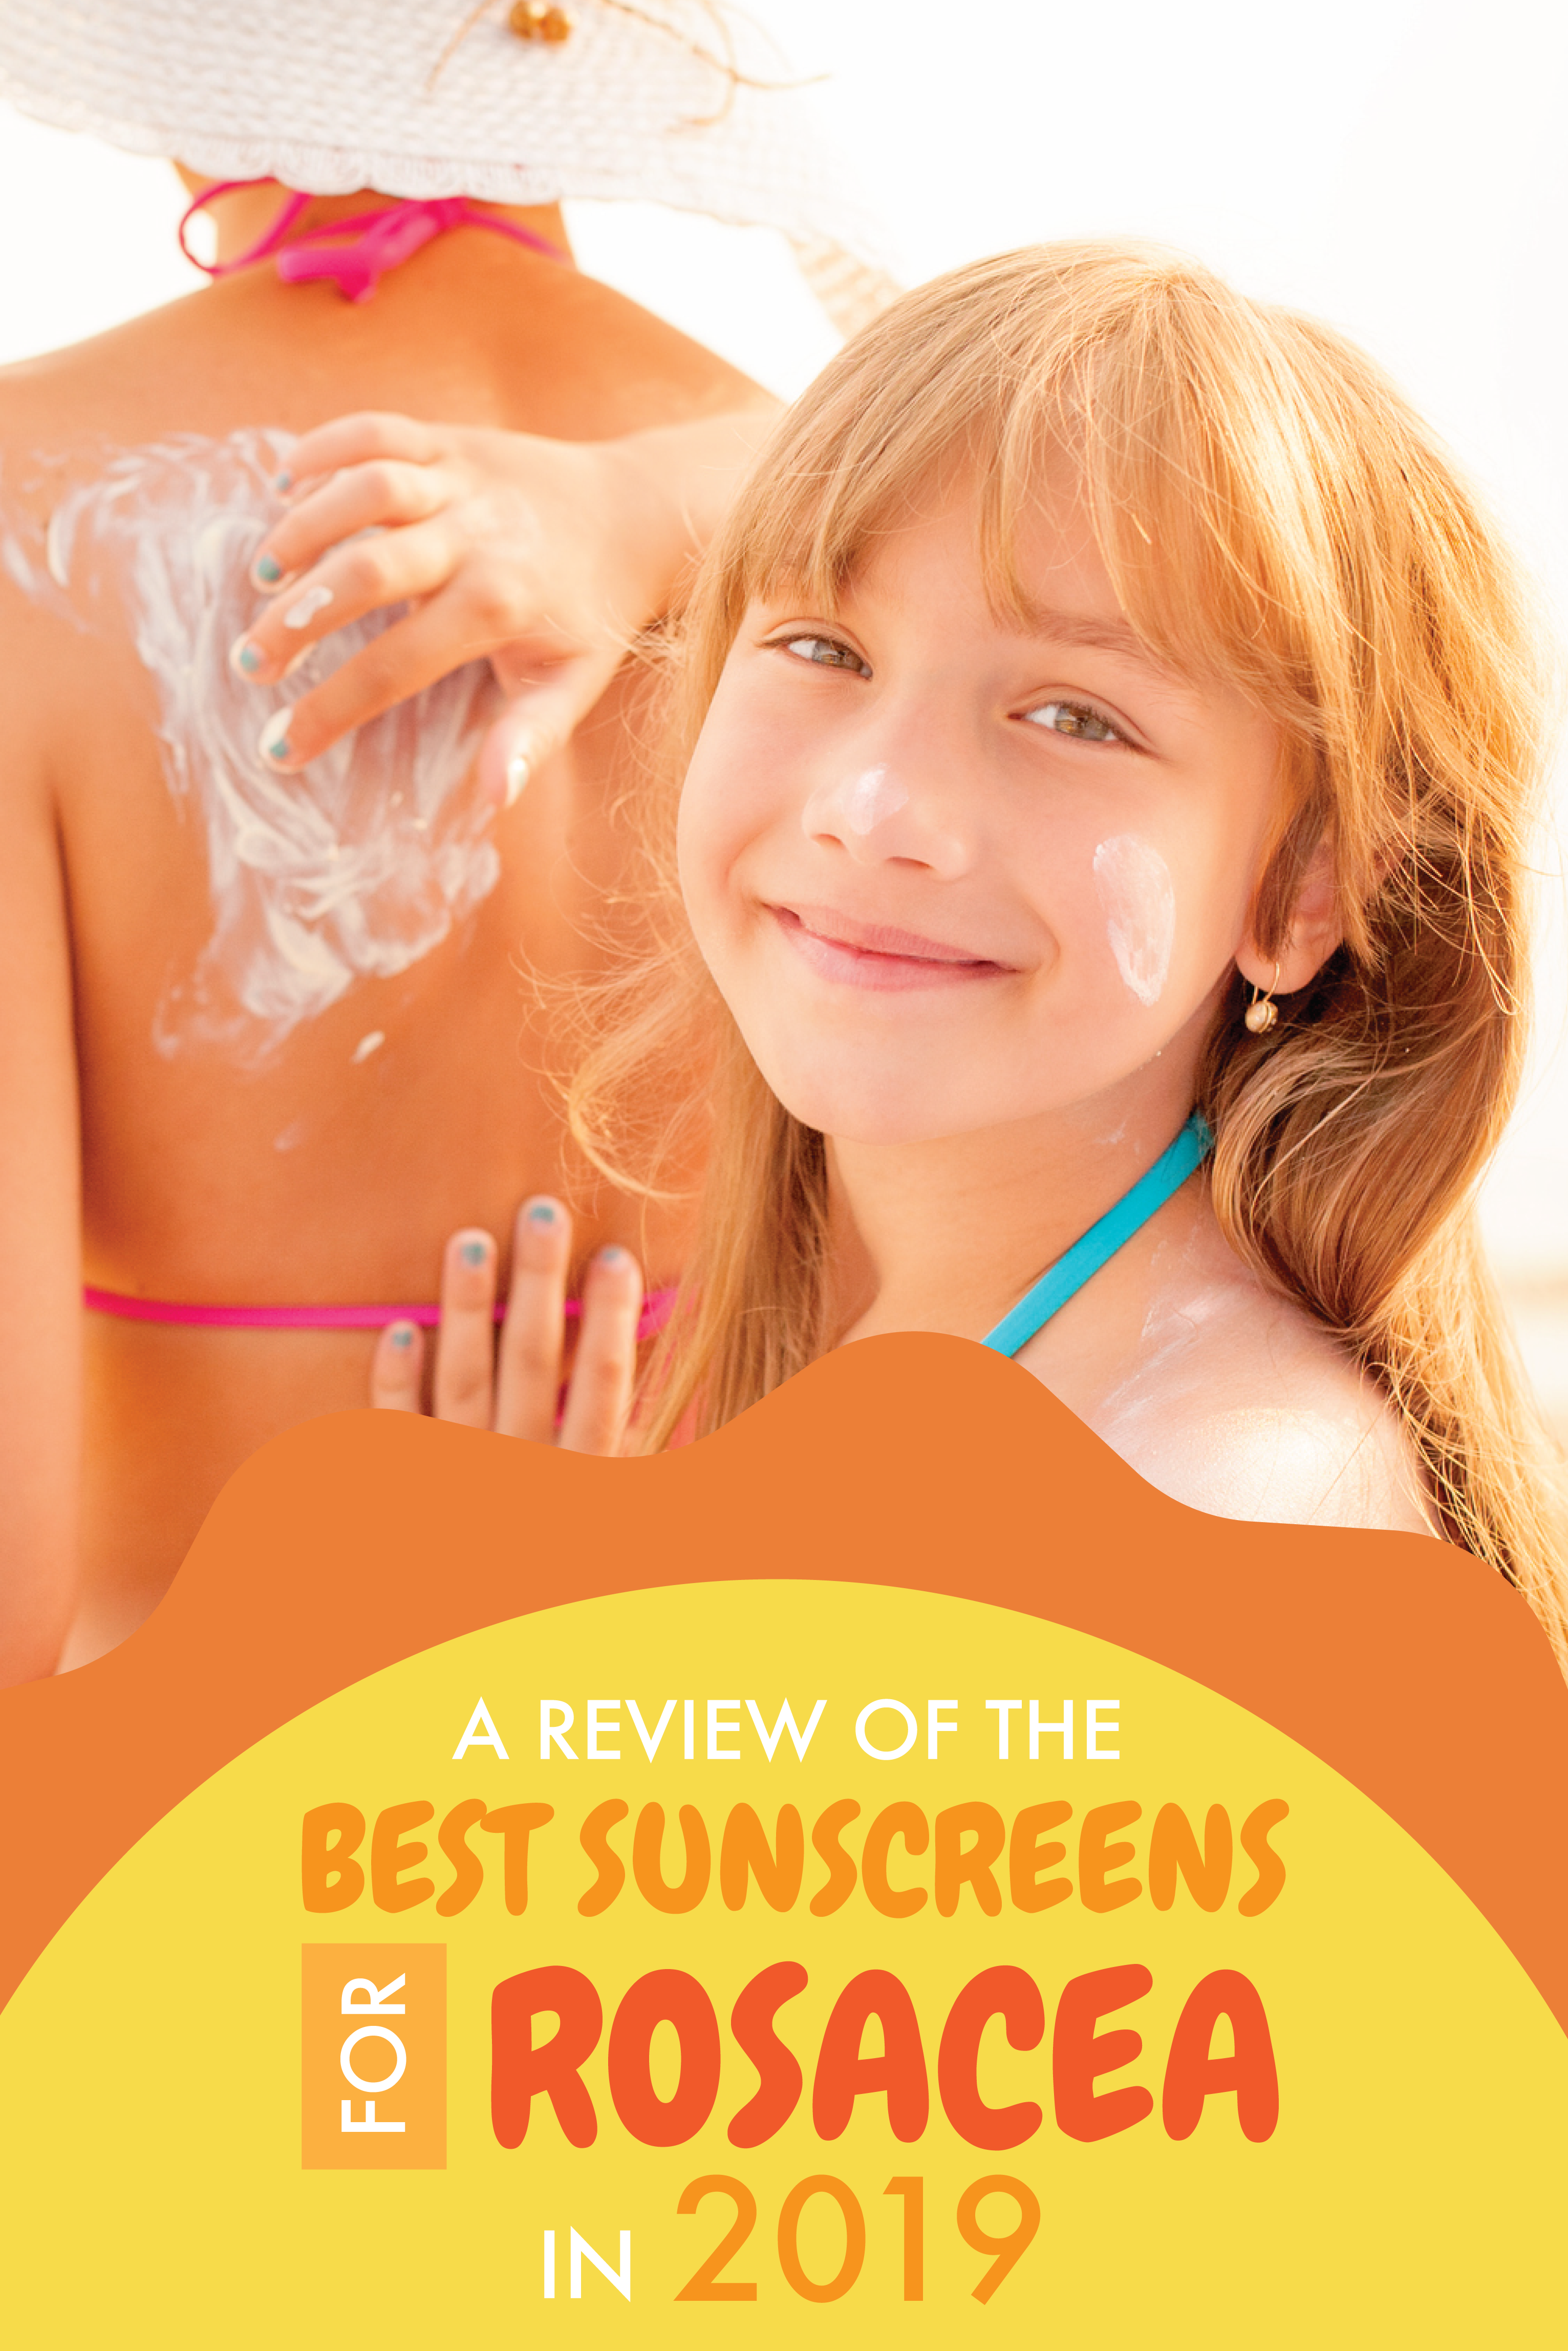 A Review of The Best Sunscreens for Rosacea in 2019